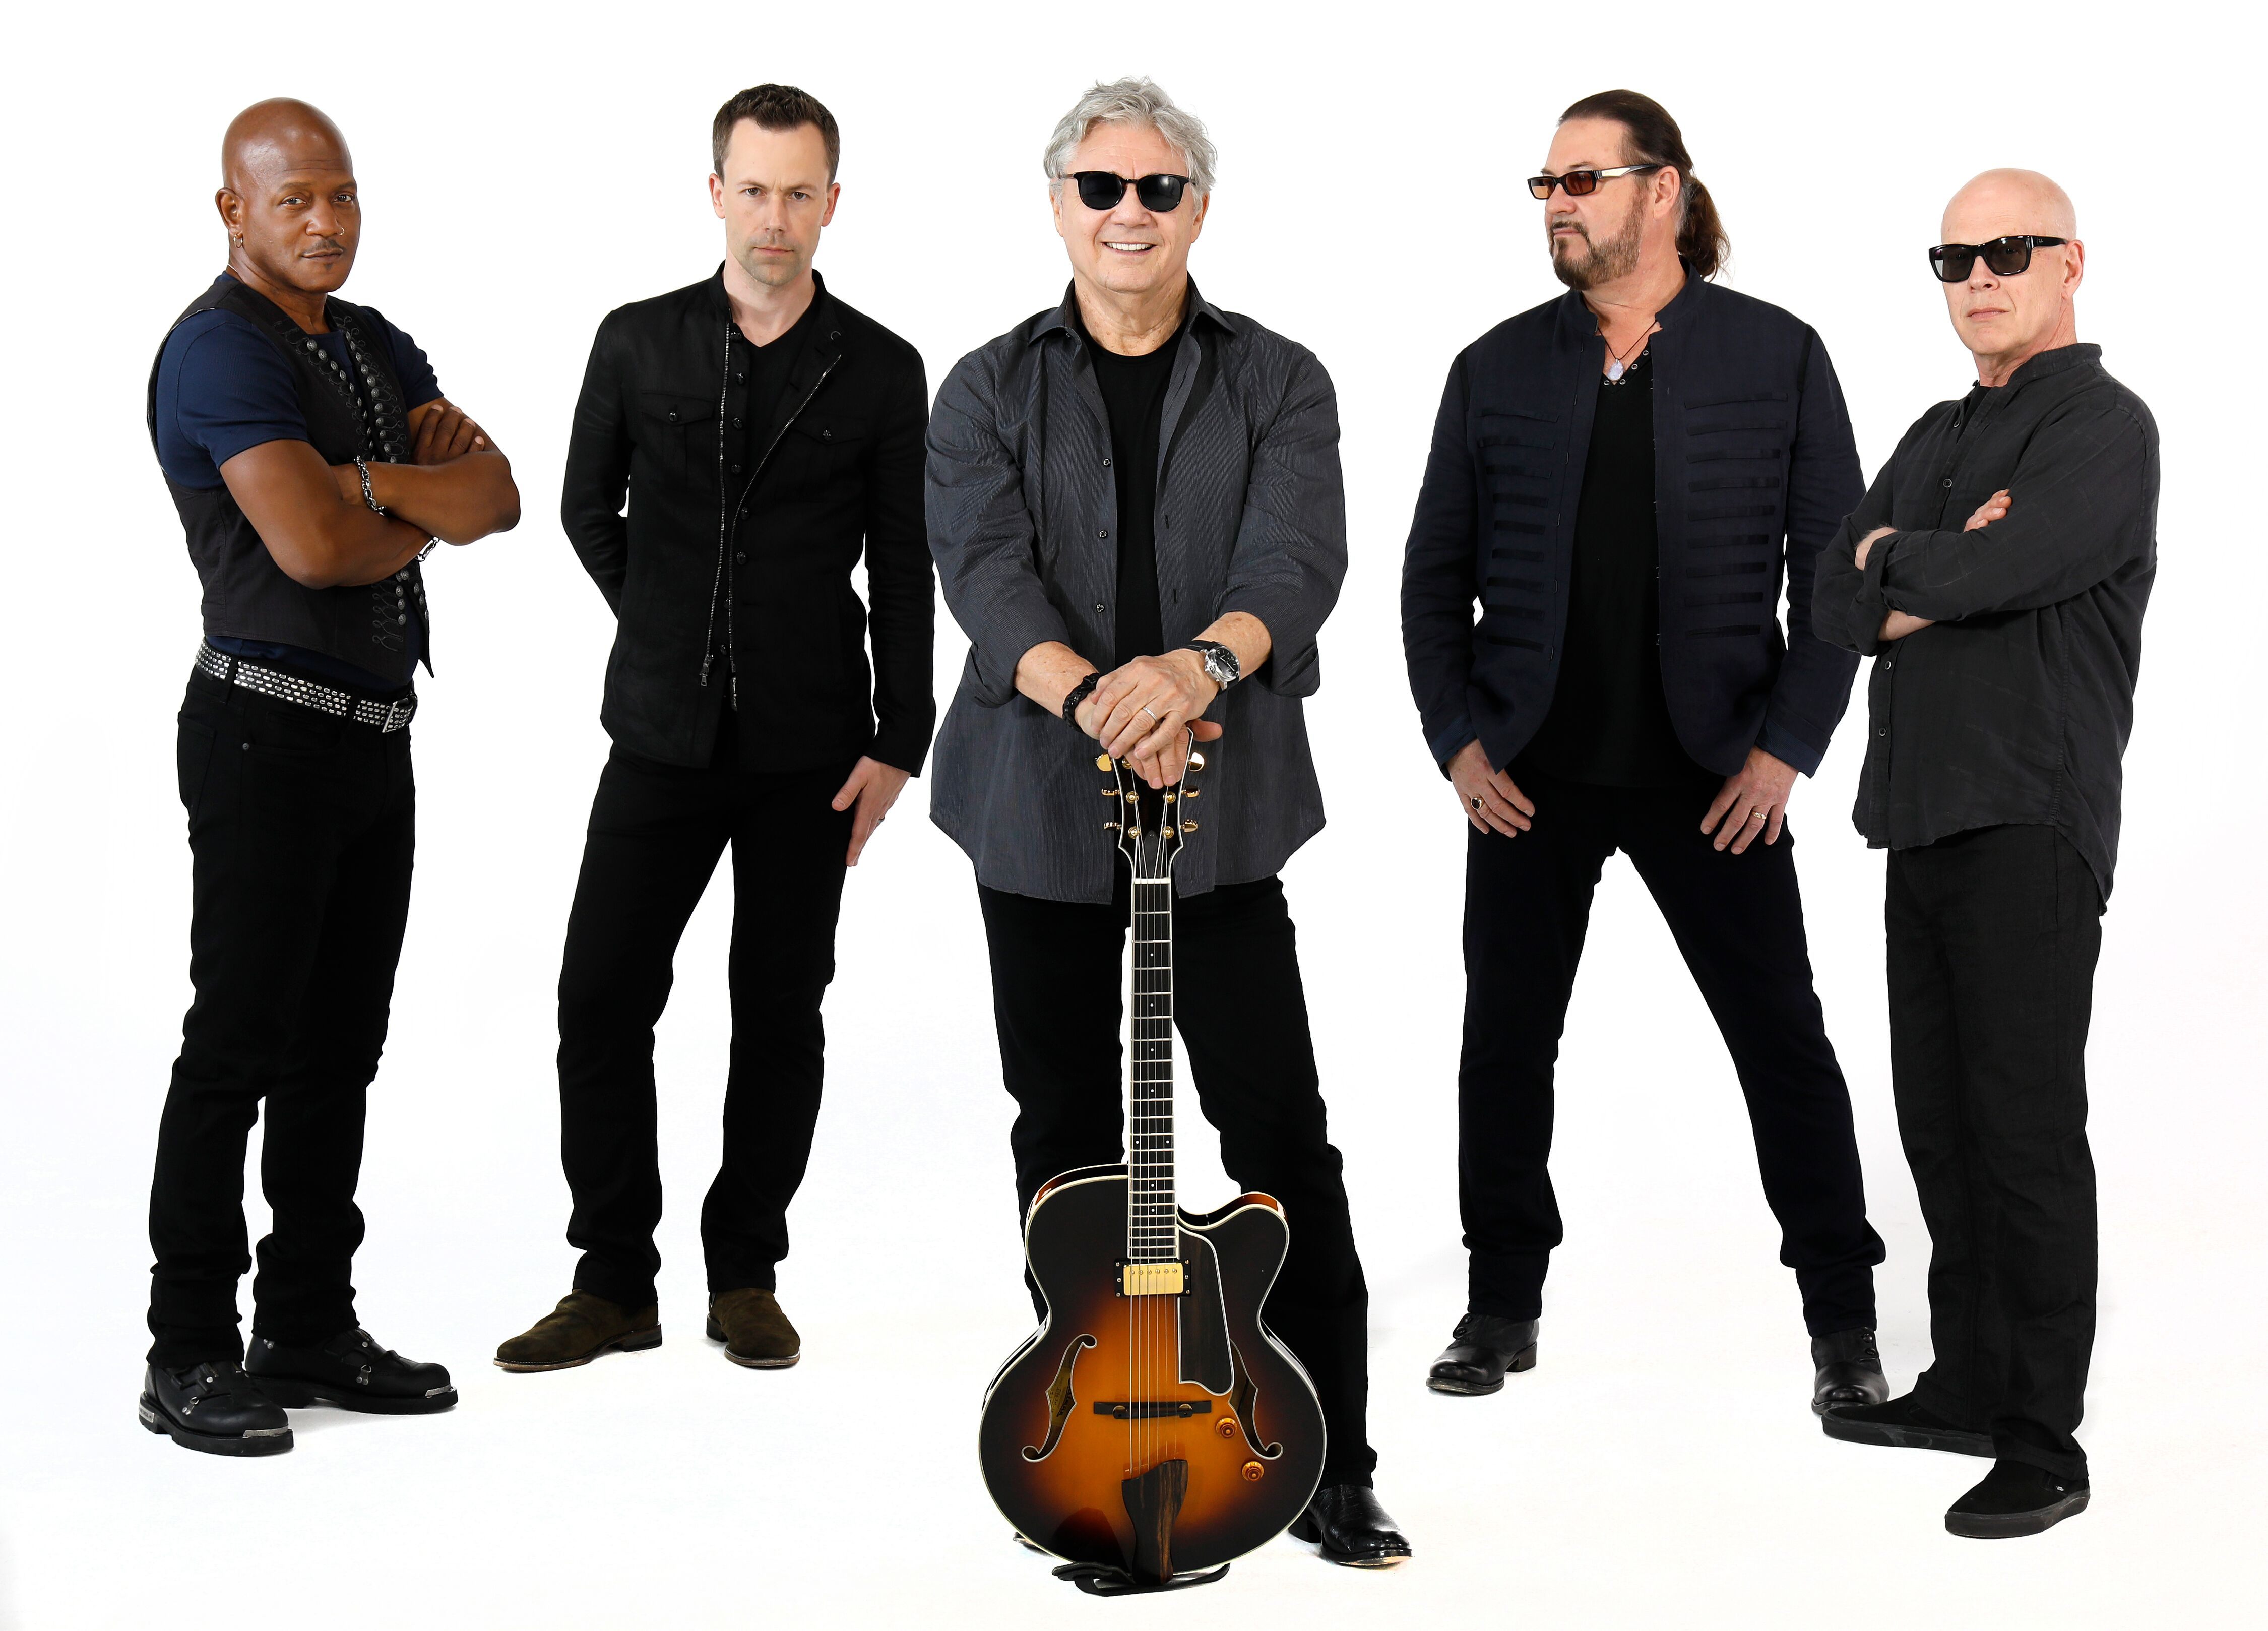 Steve Miller Band coming to the AMP